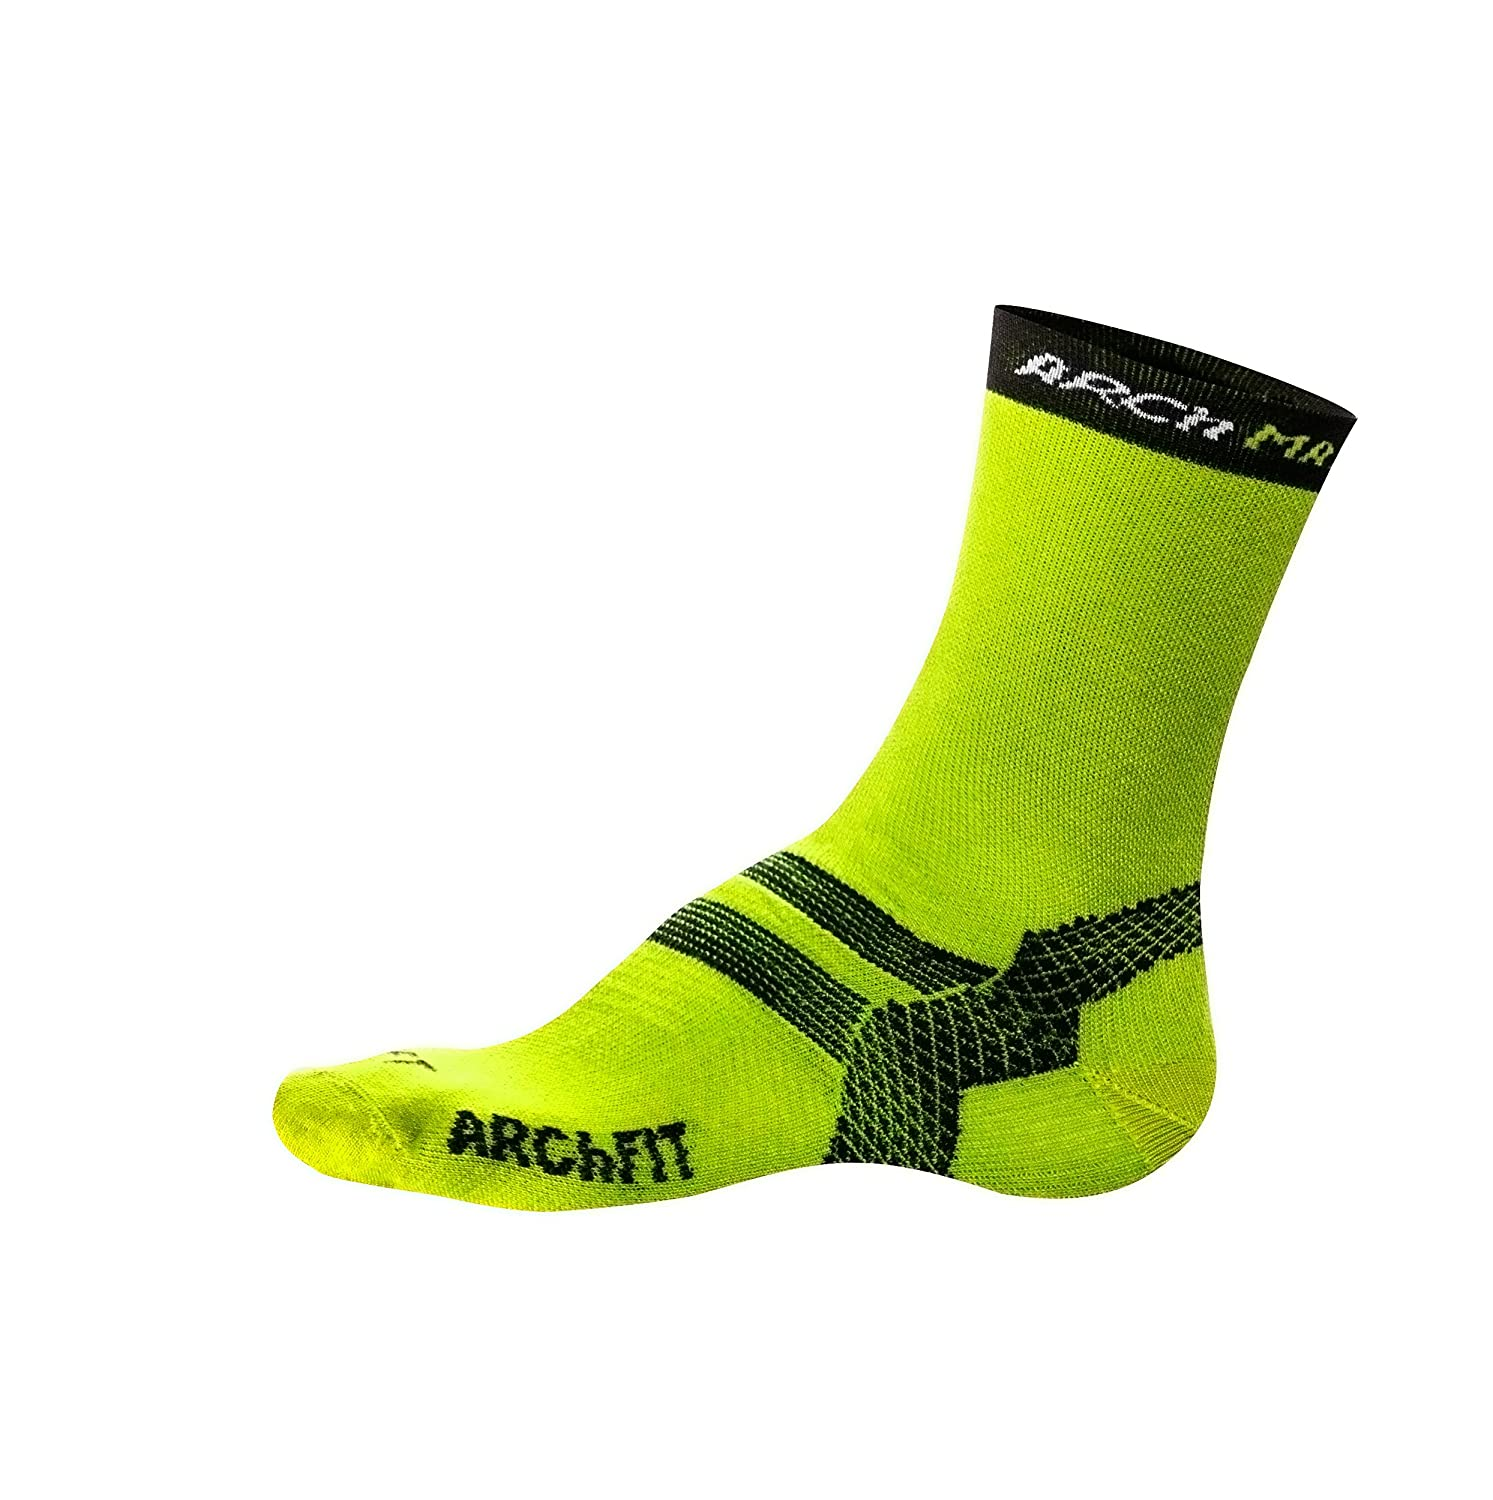 Arch Max Archfit Padel - Calcetín Deportivo Unisex, Color ...